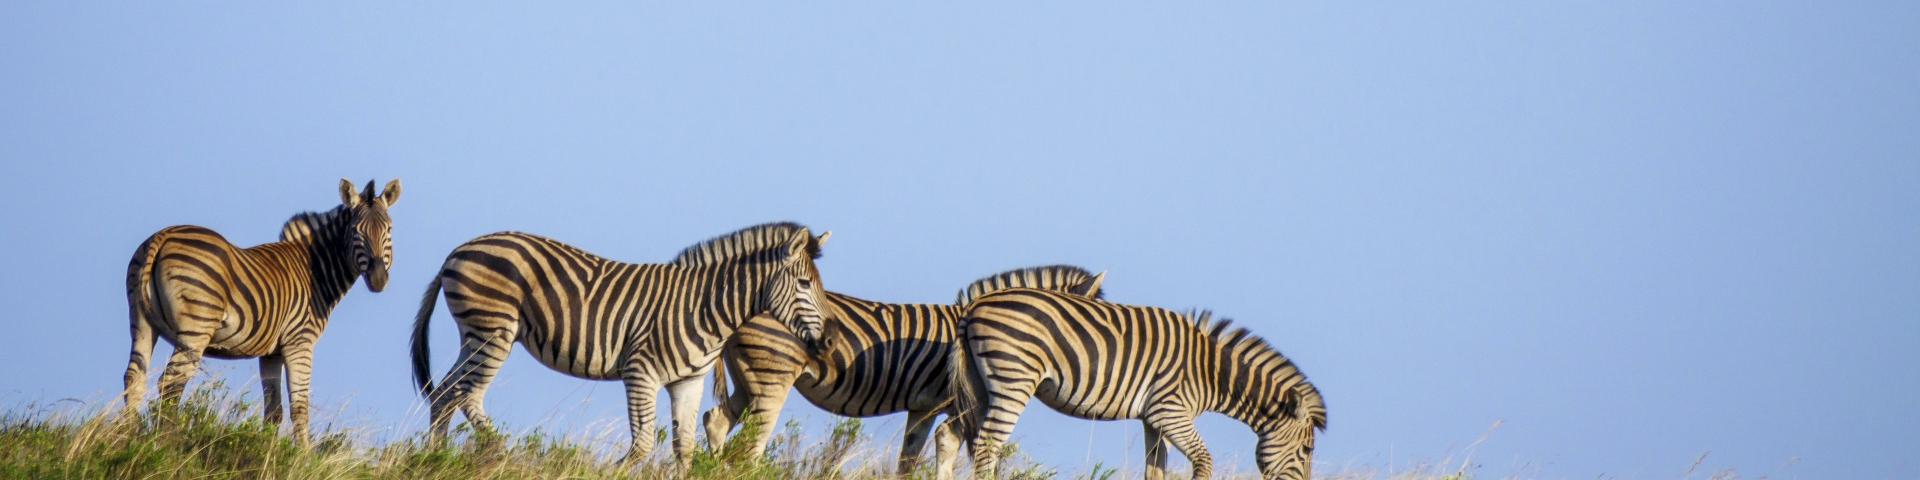 Mpumalanga Province Nkomazi Private Game Reserve Zebra Tours and Safaris